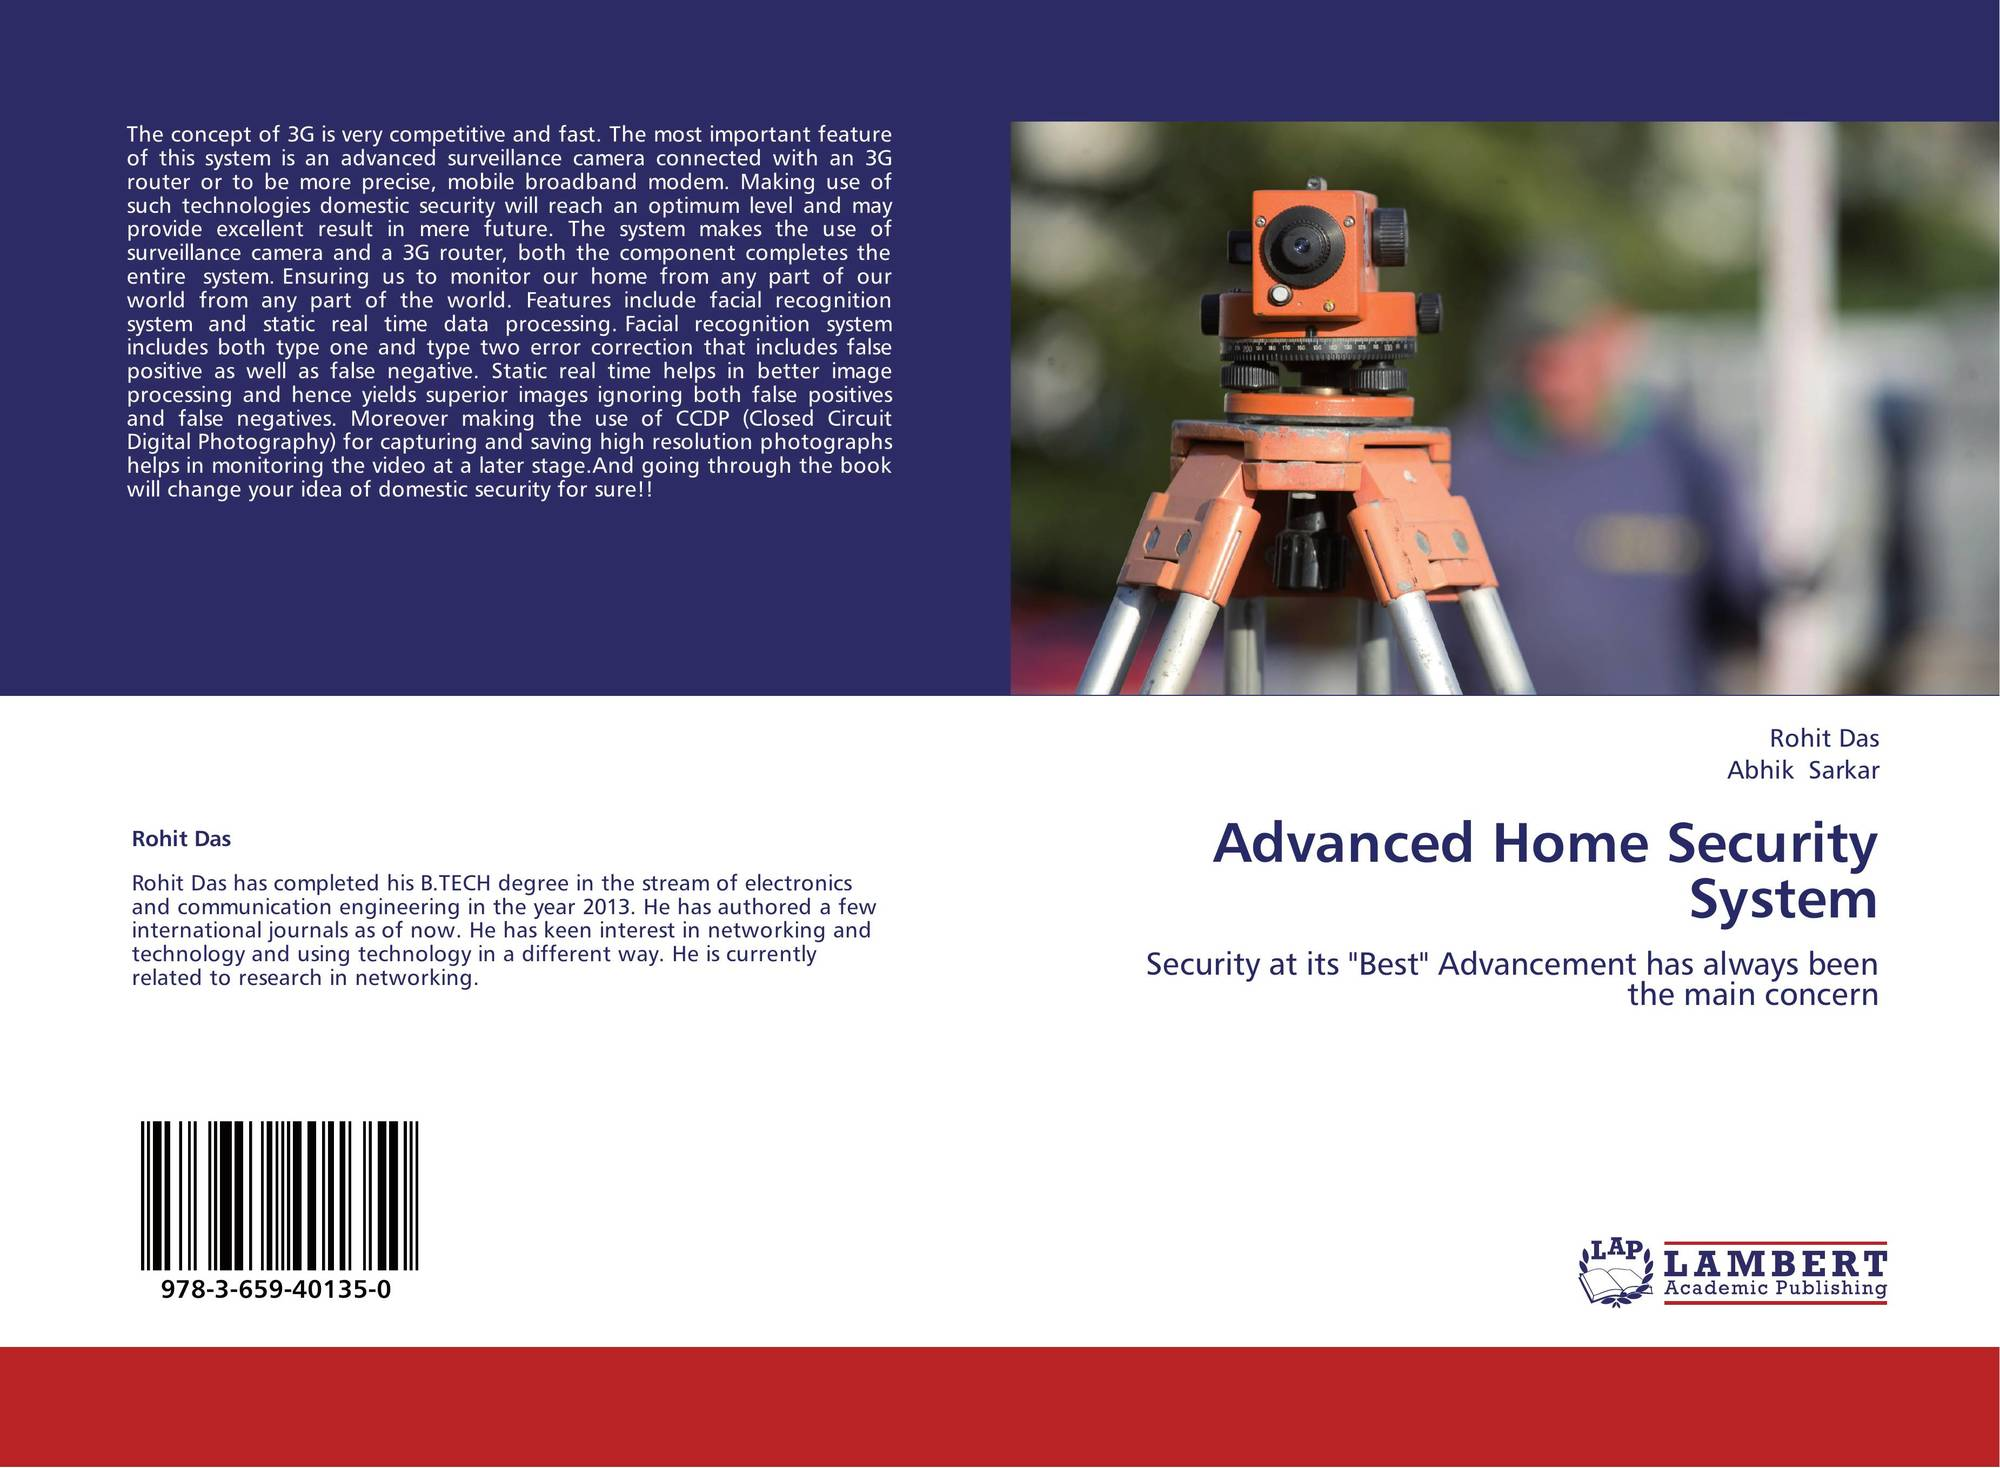 Advanced home security system 978 3 659 40135 0 for Advanced home